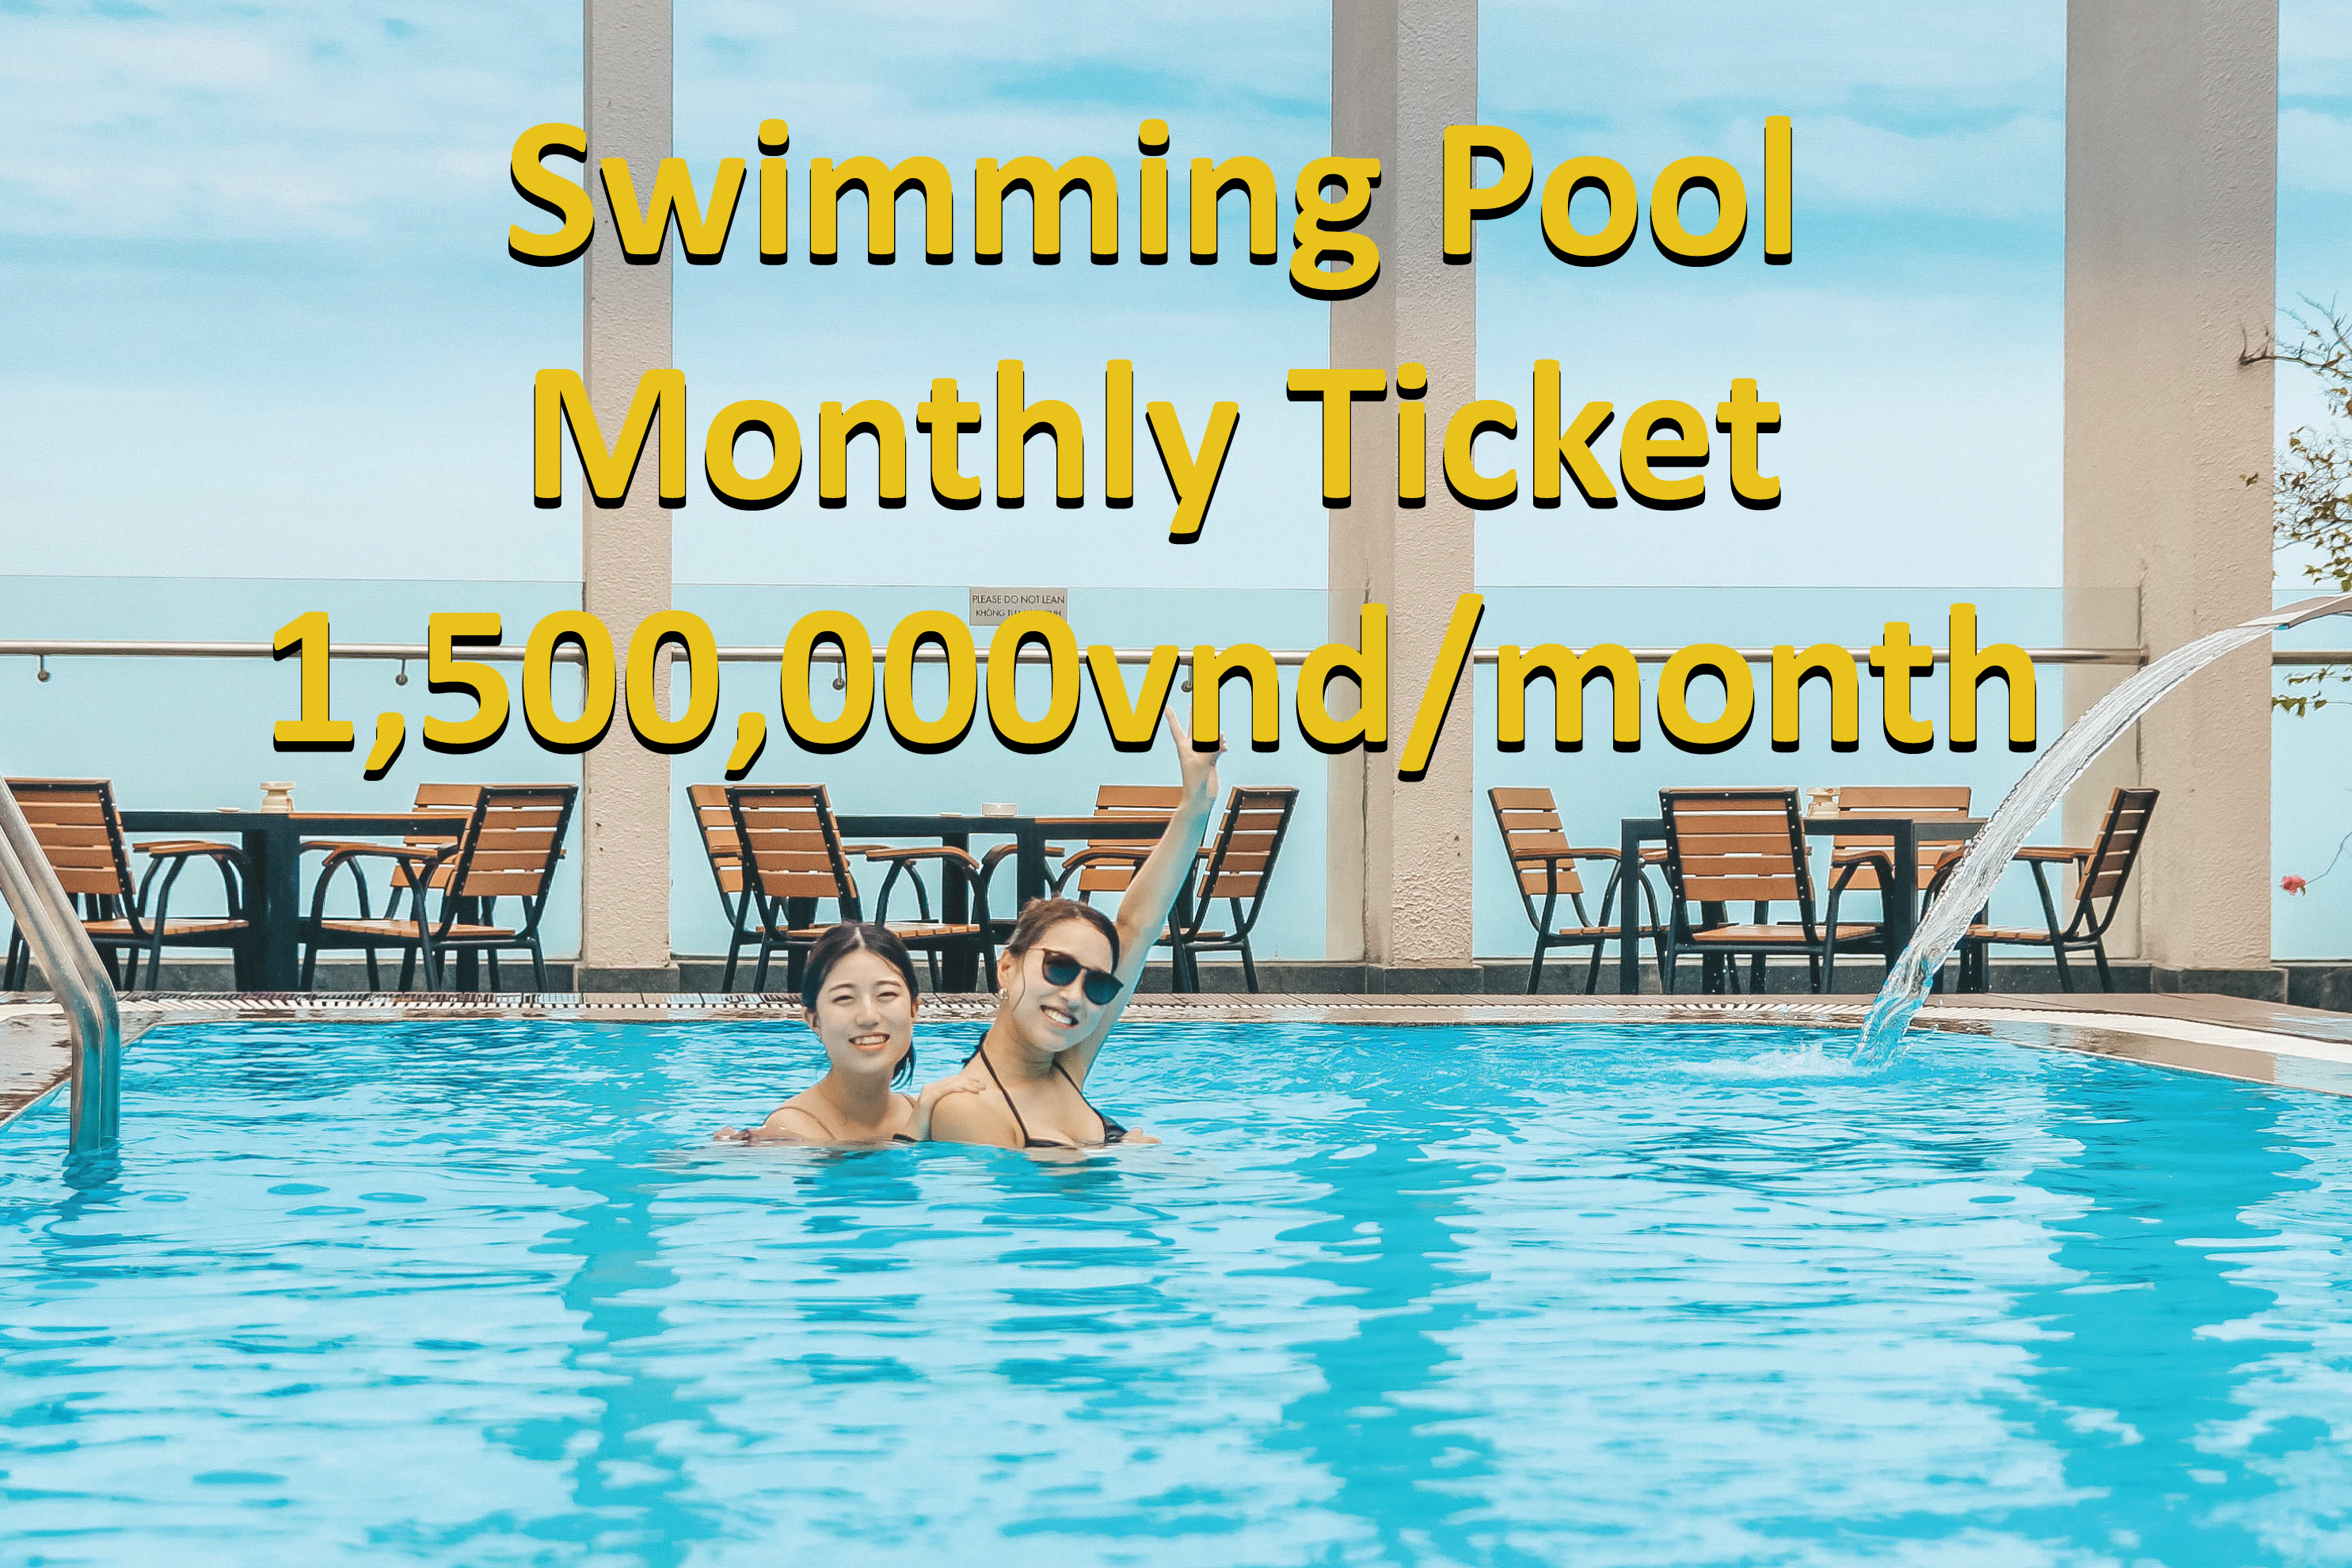 Swimming pool monthly ticket at Diamond Sea hotel